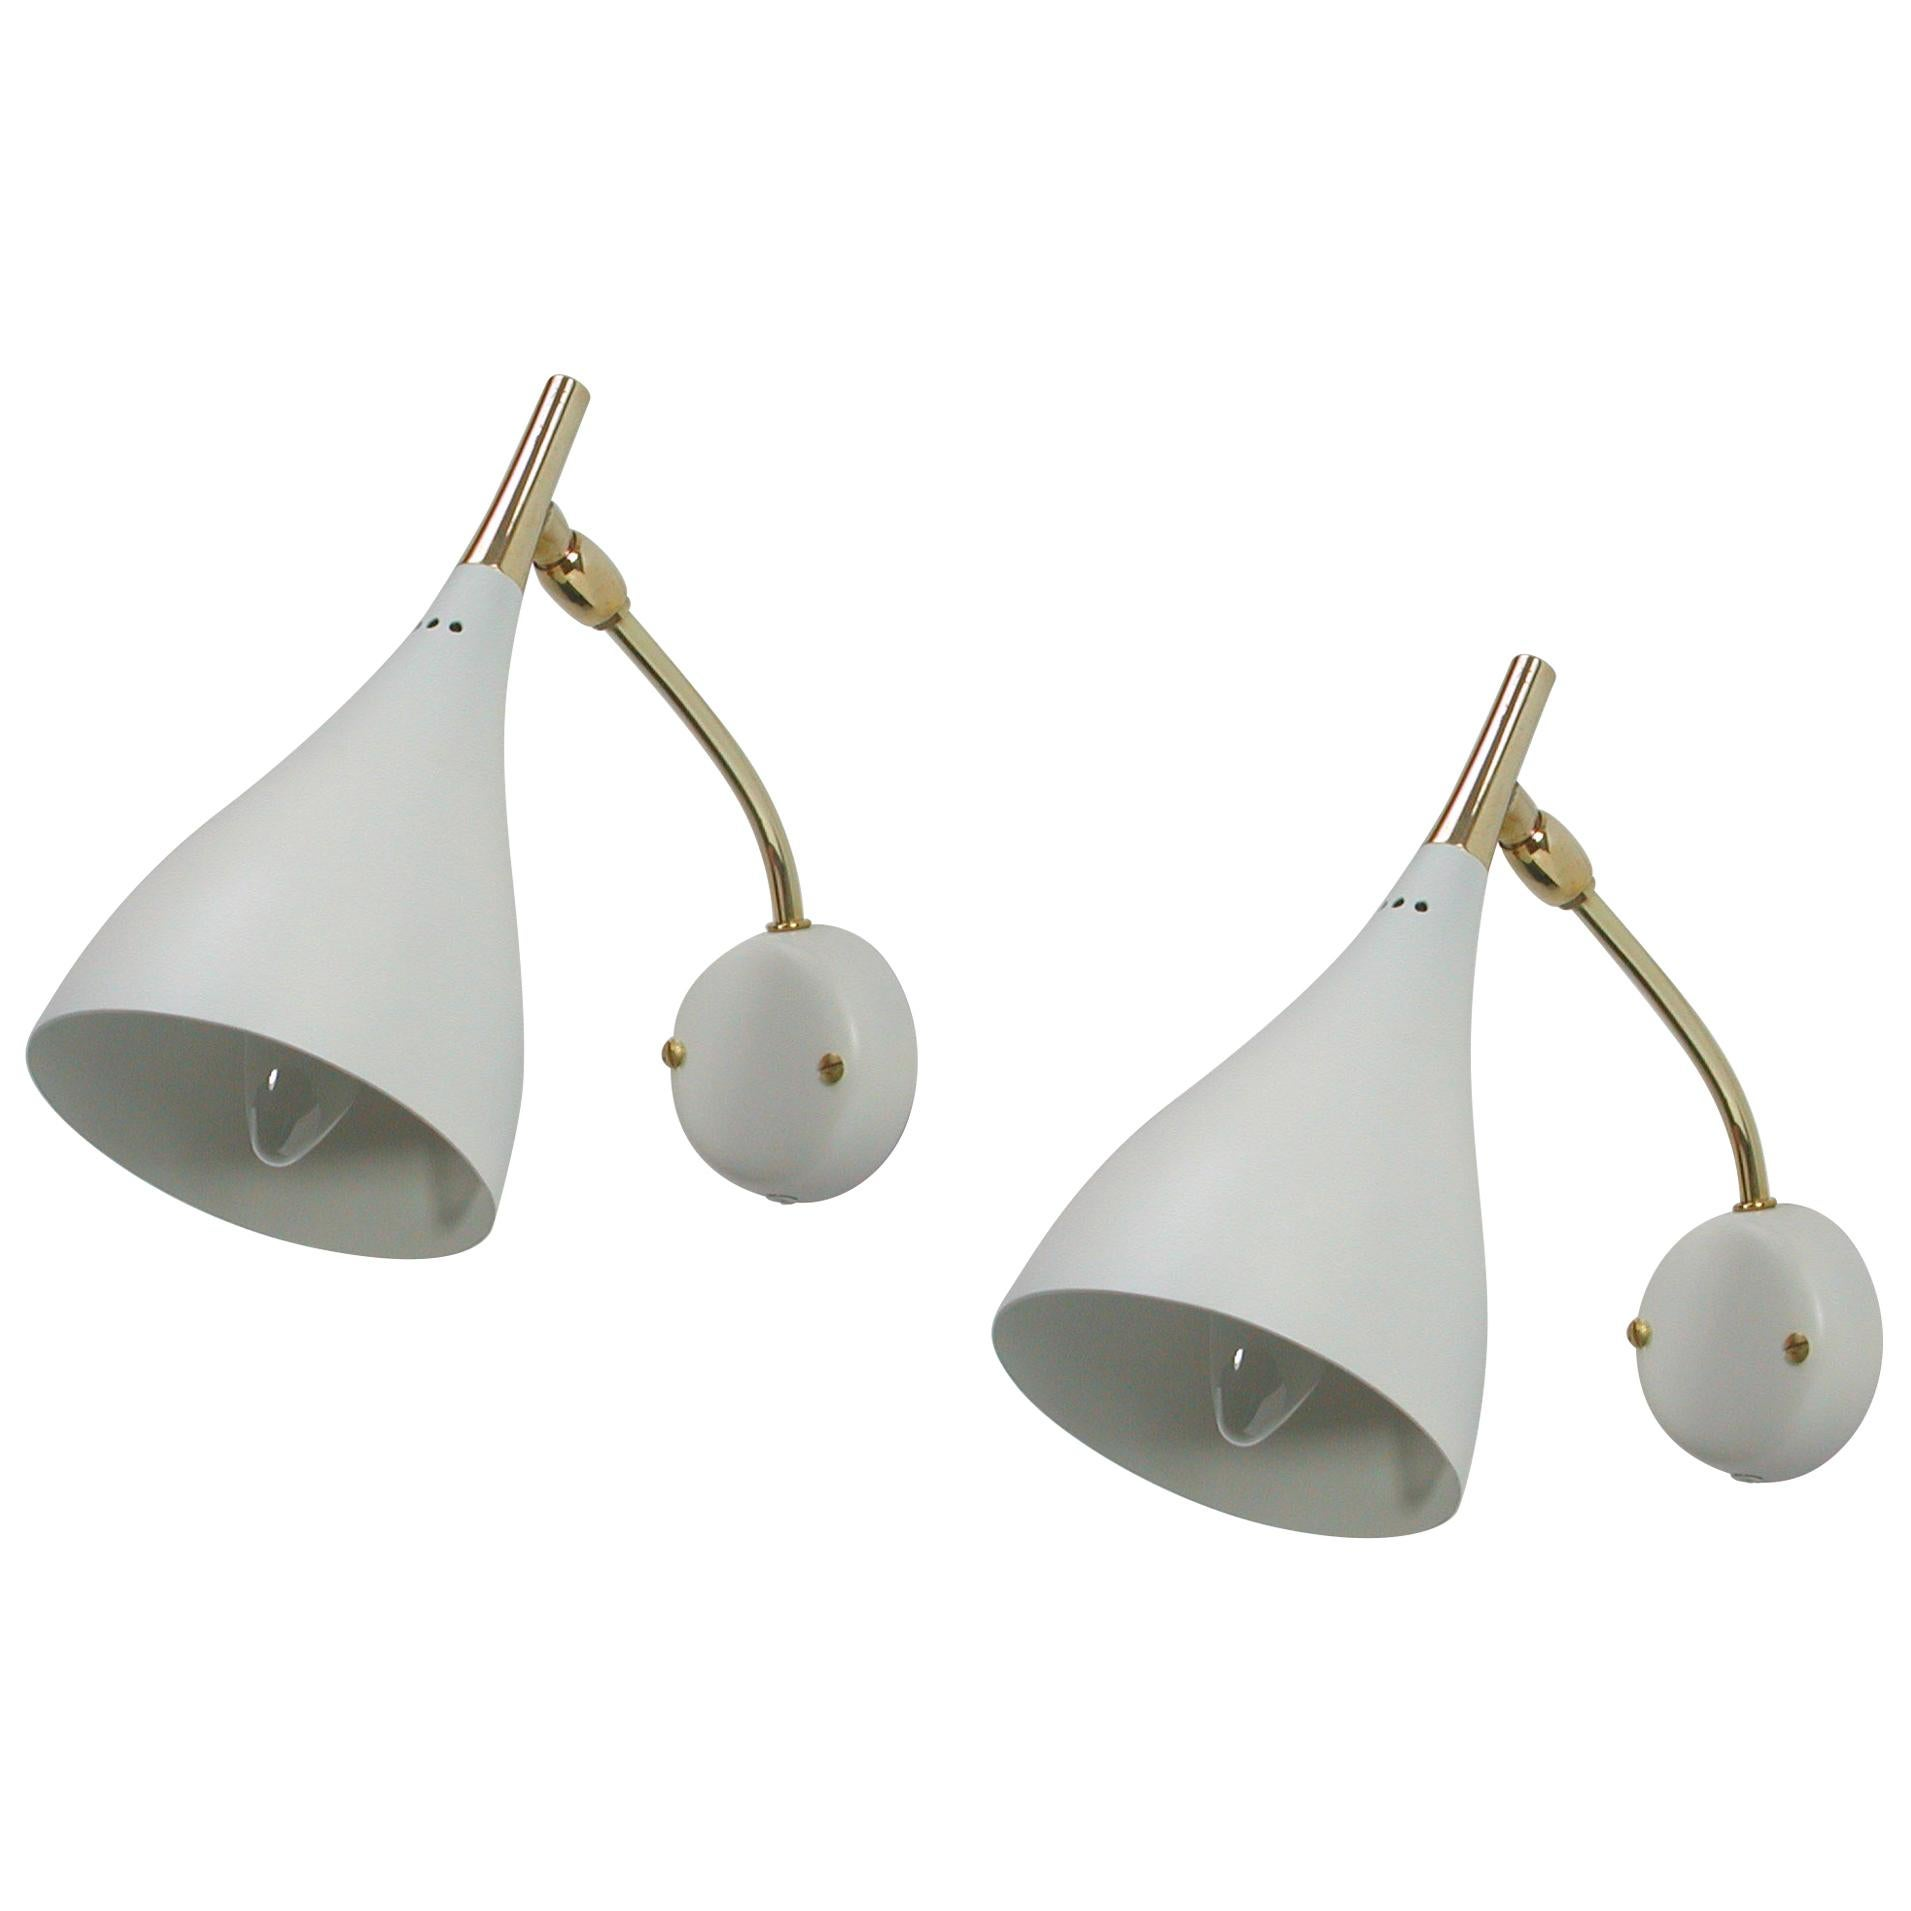 Midcentury White Adjustable Sconces, Wall Lights by Cosack, 1950s